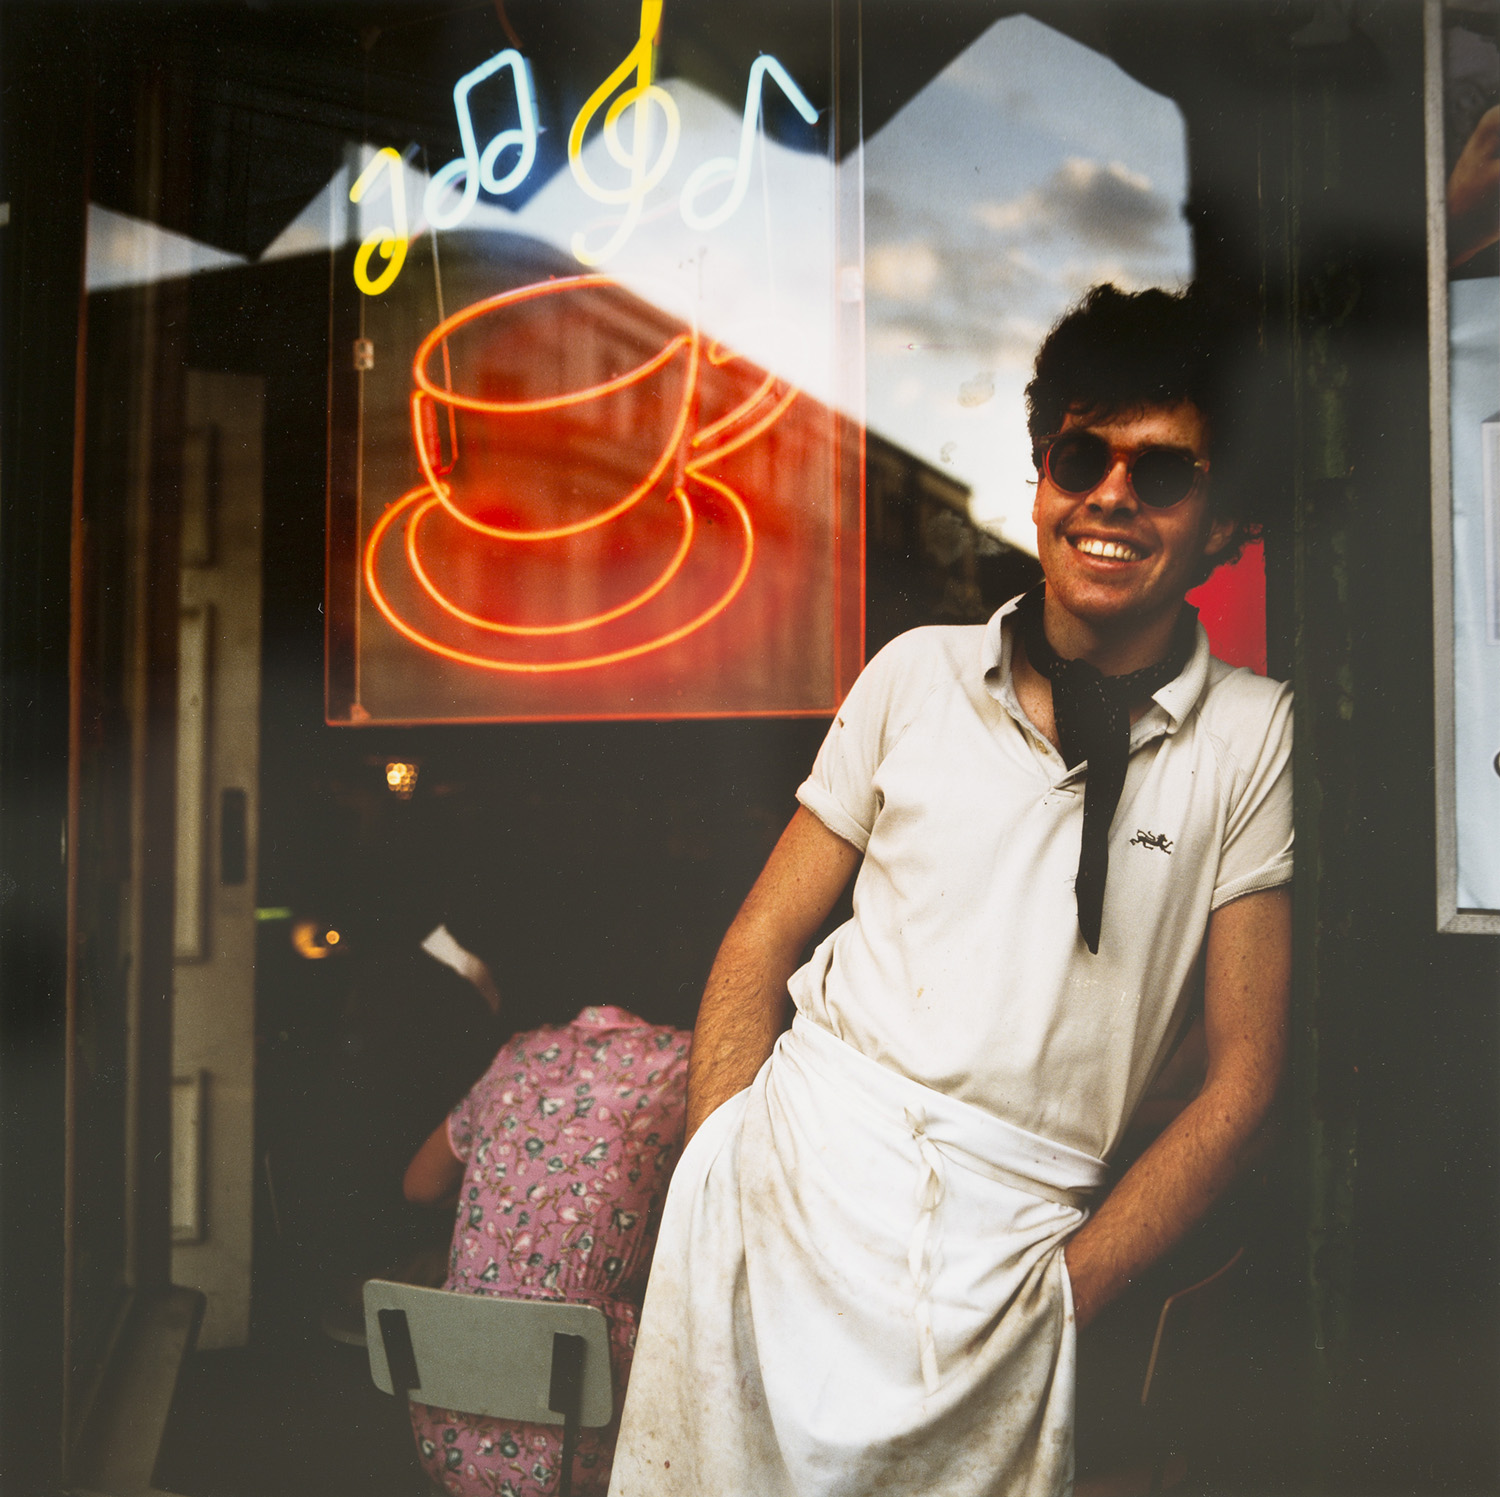 Peter Hannken, John and his Diner, 1981. Cibachrome print. Collection of the Sarjeant Gallery Te Whare o Rehua Whanganui